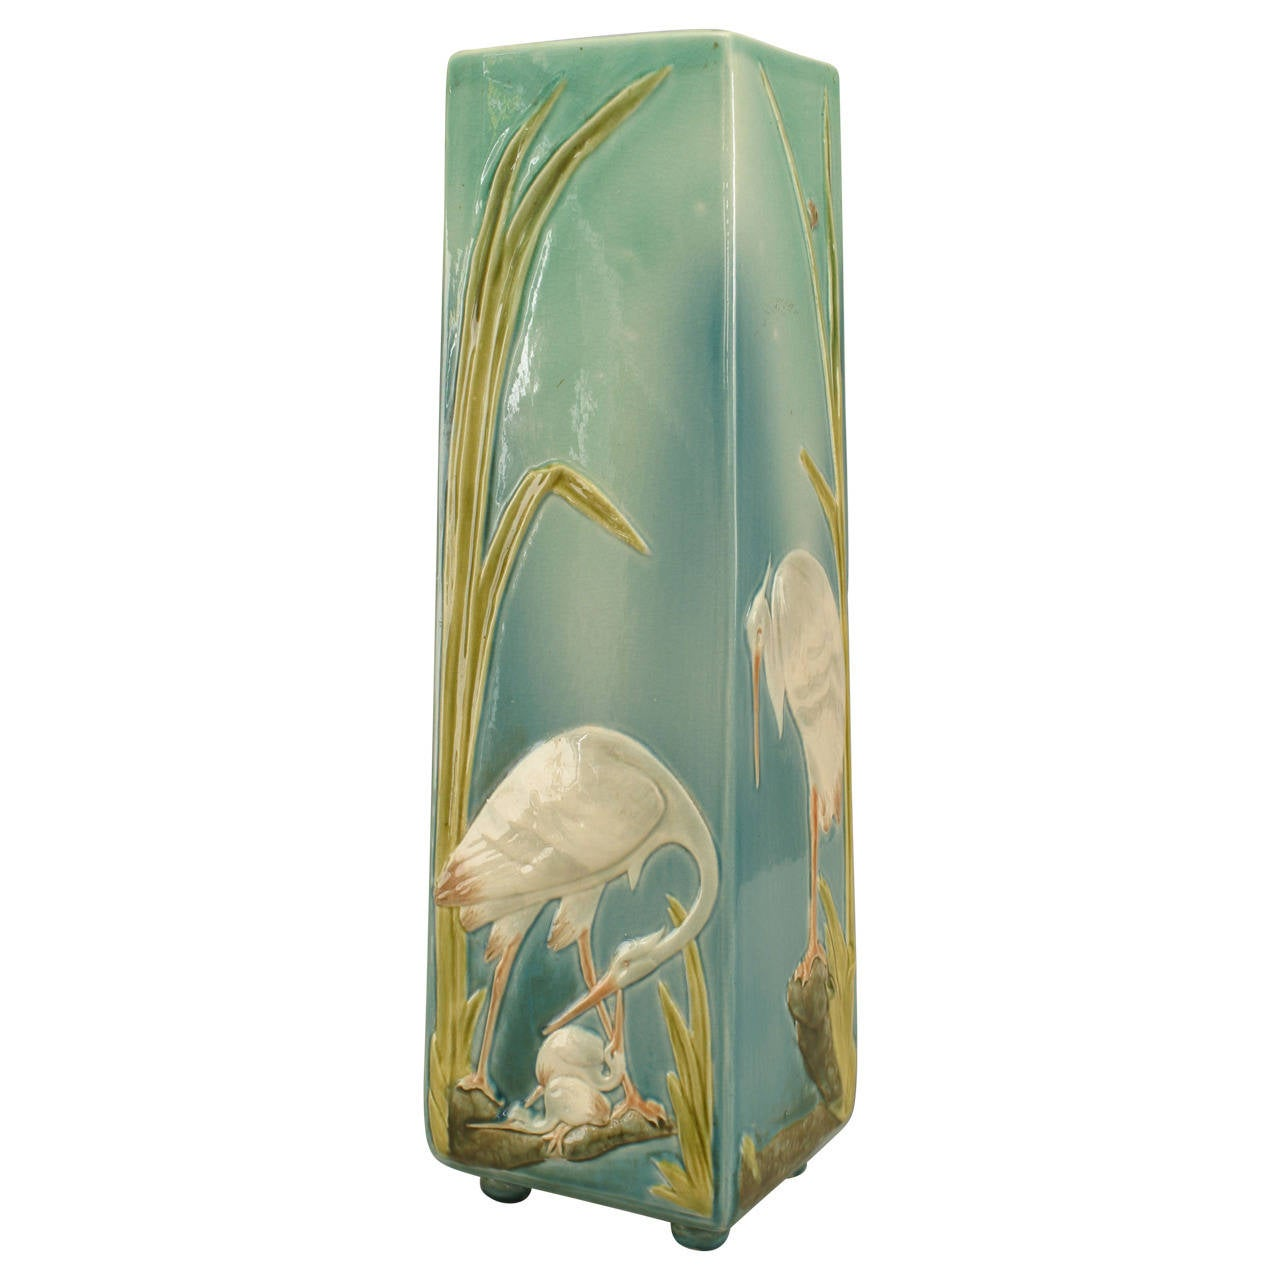 Turn of the Century French Sarreguemines Vase with Floral and Aviary Designs